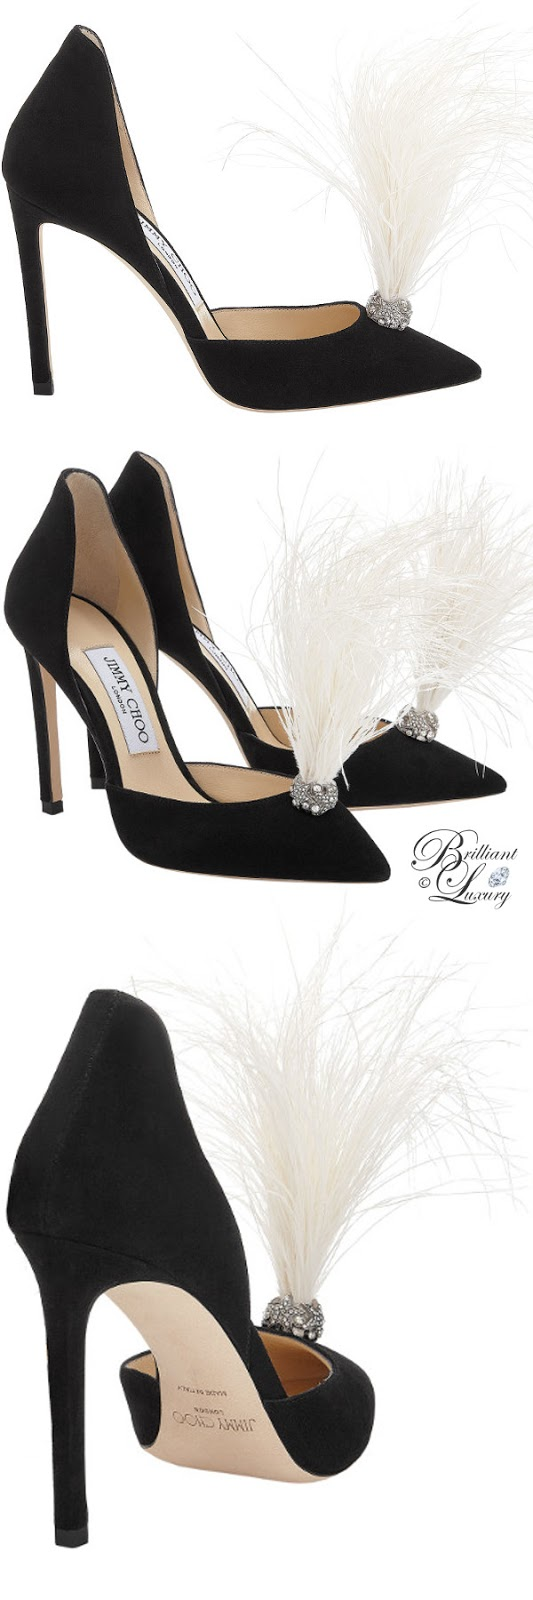 optimized pins Brilliant Luxury ♦ Jimmy Choo Liz Black Suede Pointy Toe Pumps with Crystals and White Fascinator Feathers #brilliantluxury